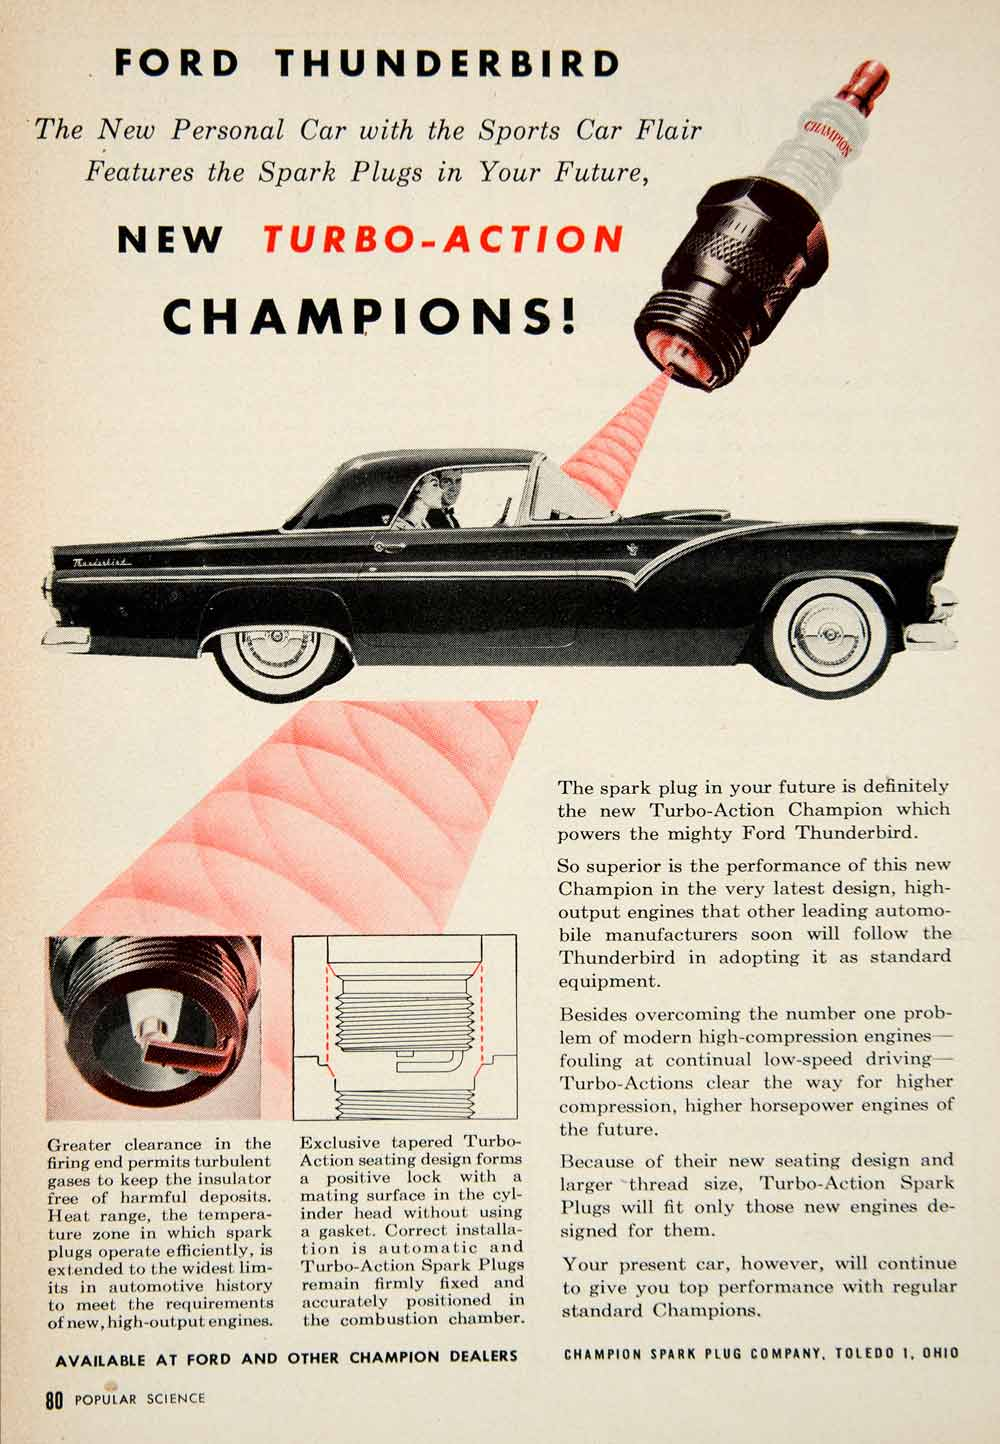 1954 Ad Champion Turbo Action Spark Plugs 1955 Ford Thunderbird Sports Car PSC3